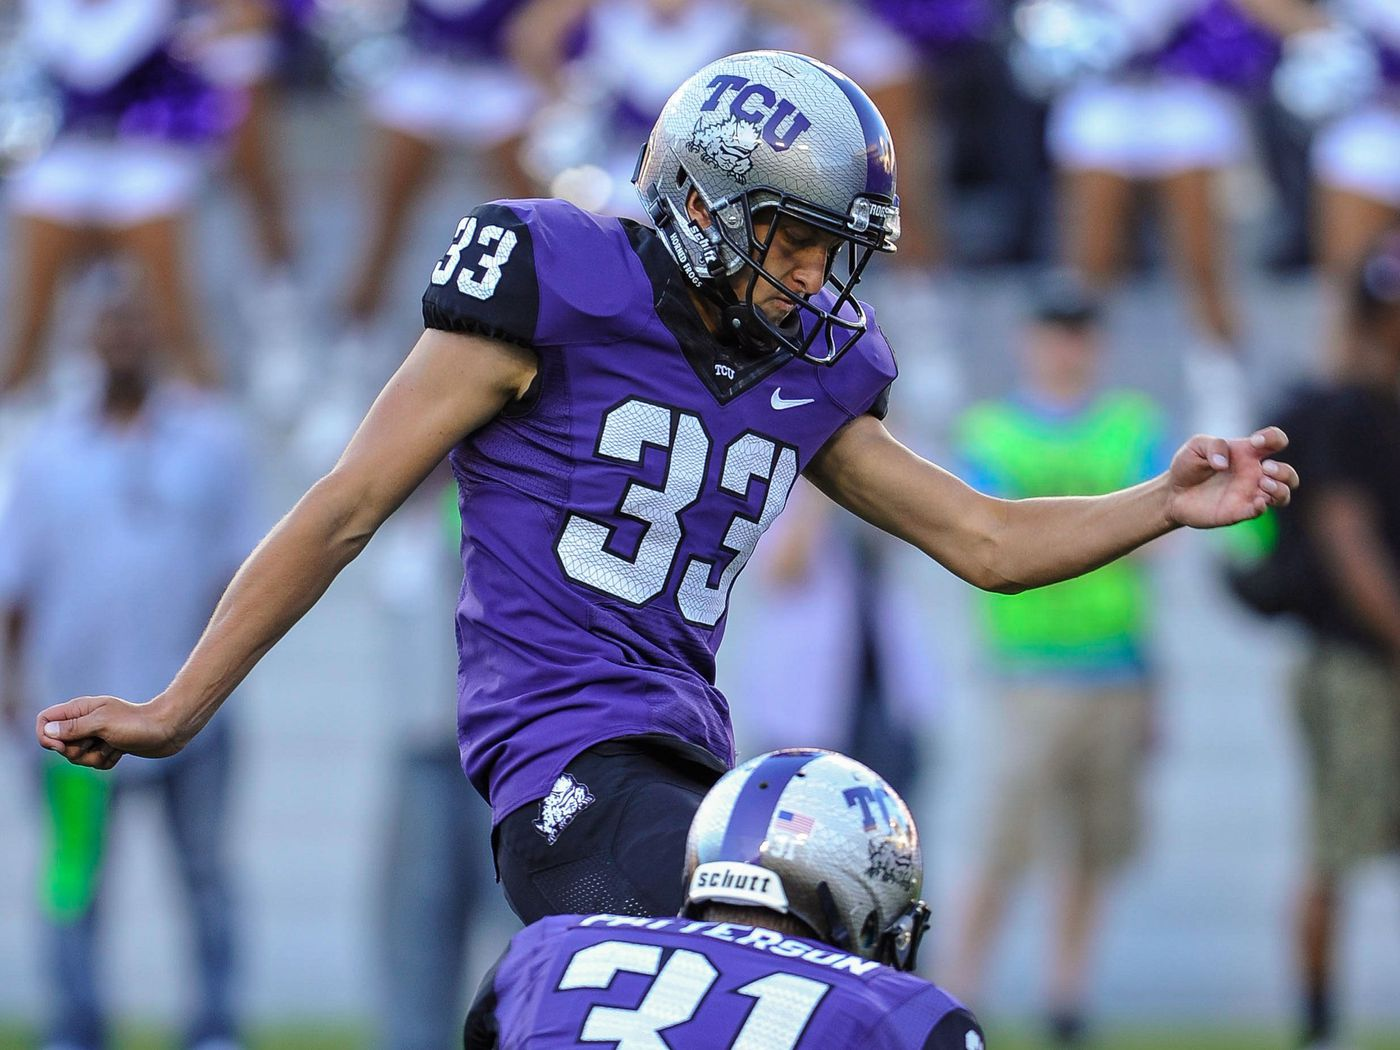 Legs: K-State 33, TCU 31 - Bring On The Cats